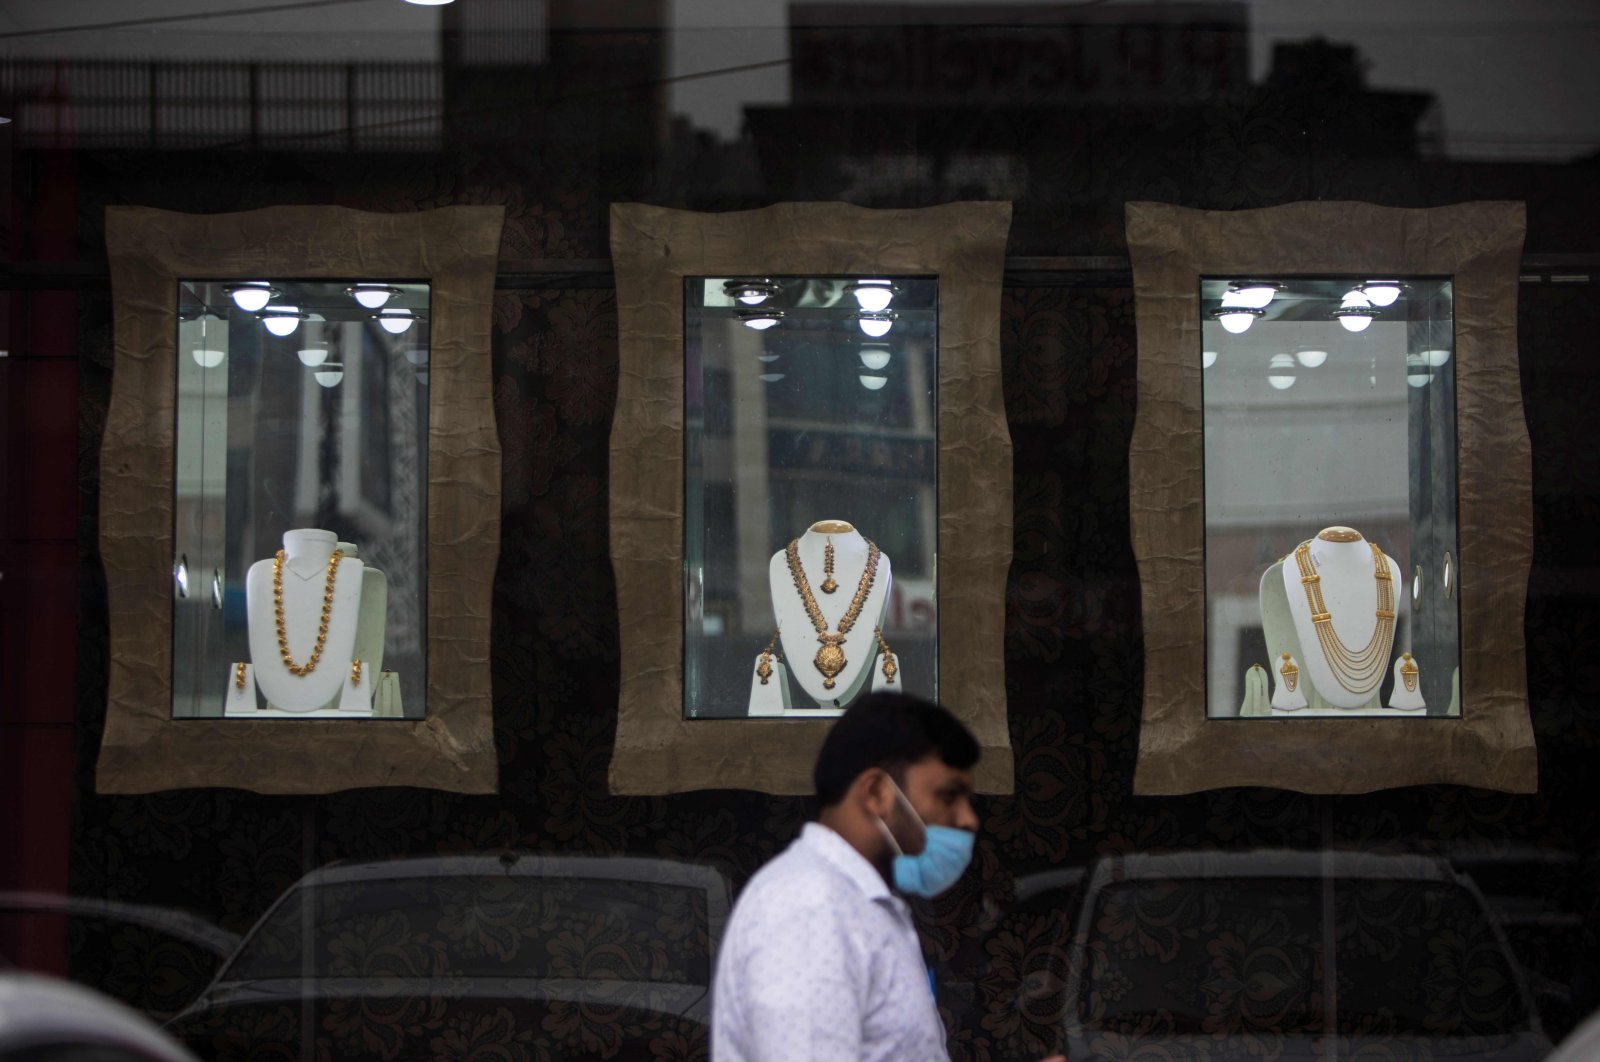 A man walks past a jewelry store window displaying gold necklaces in New Delhi, July 31, 2020. (AFP Photo)